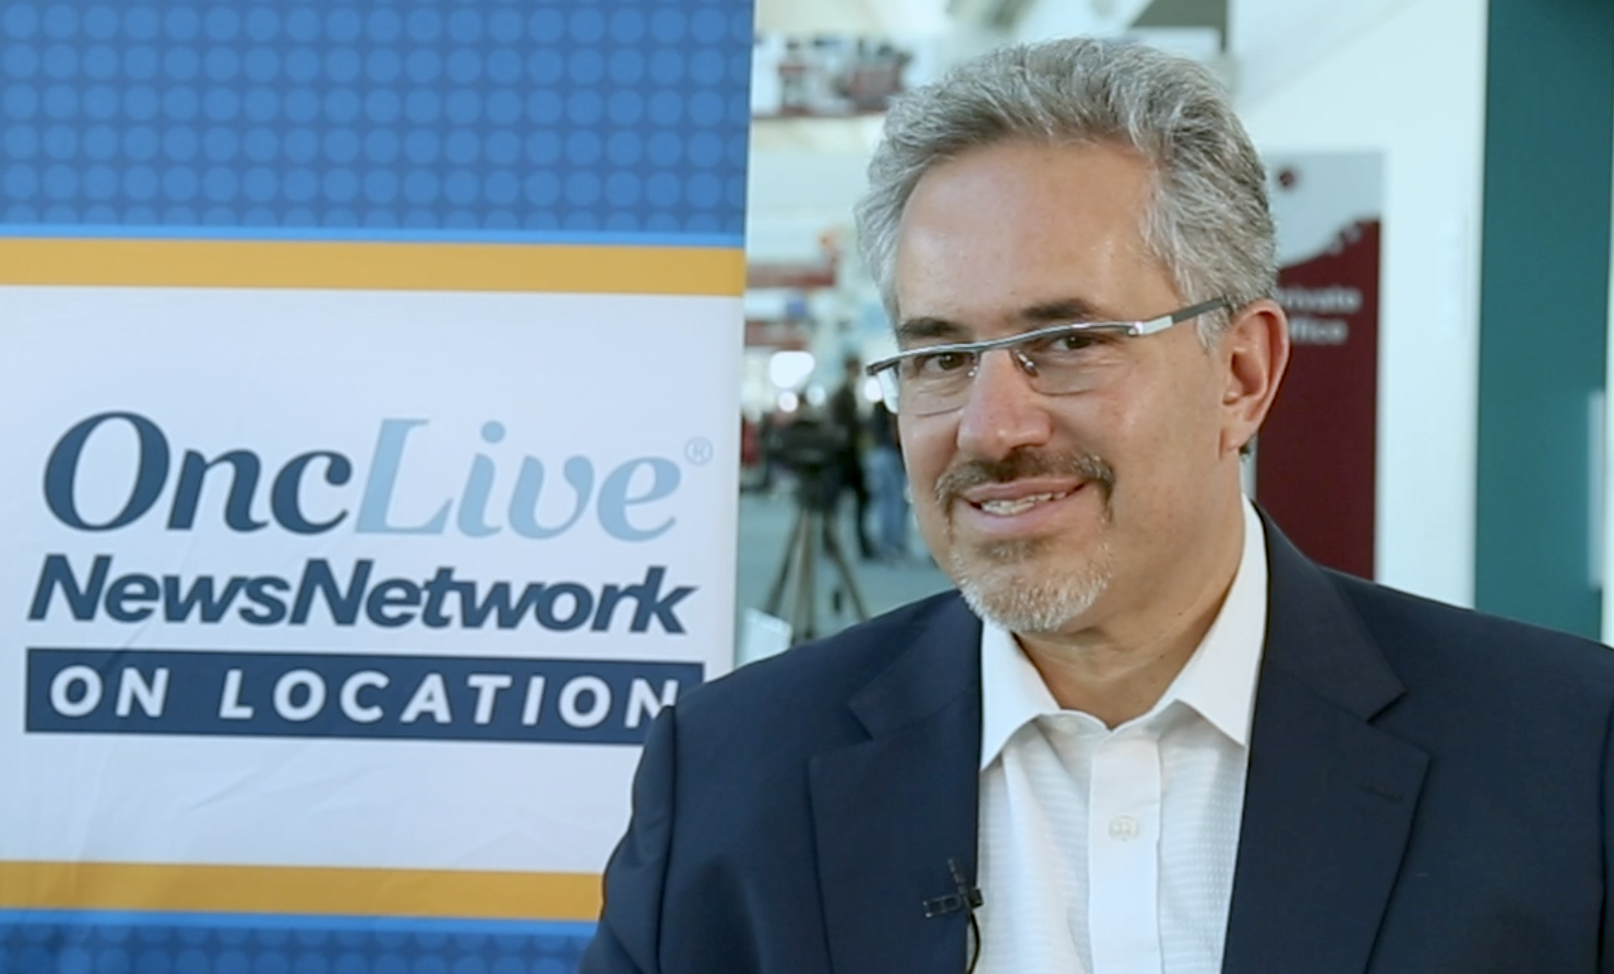 Dr. Mesa Discusses Exciting Abstracts on Myeloproliferative Neoplasms